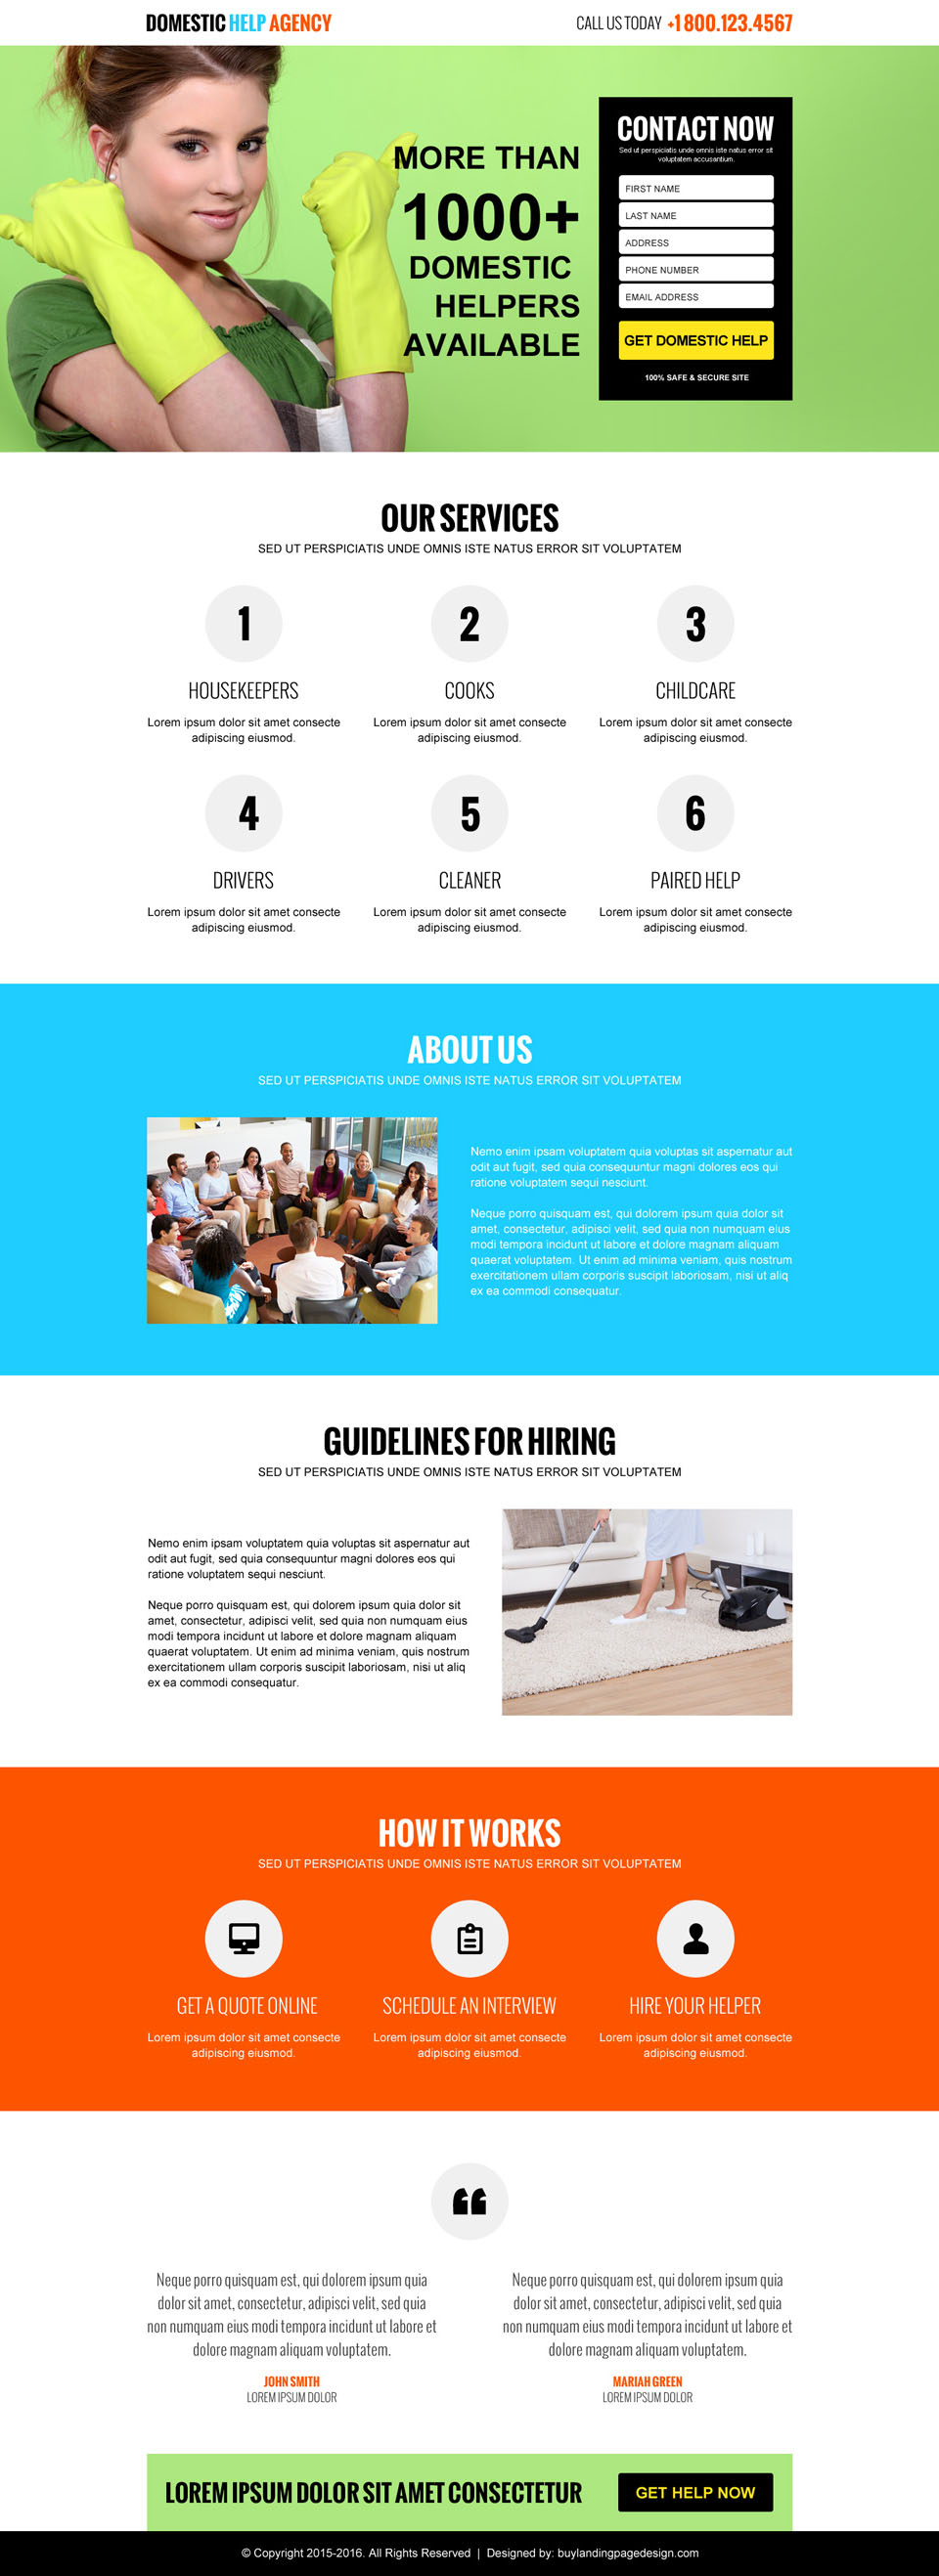 domestic-help-agency-lead-capture-responsive-landing-page-design-template-001